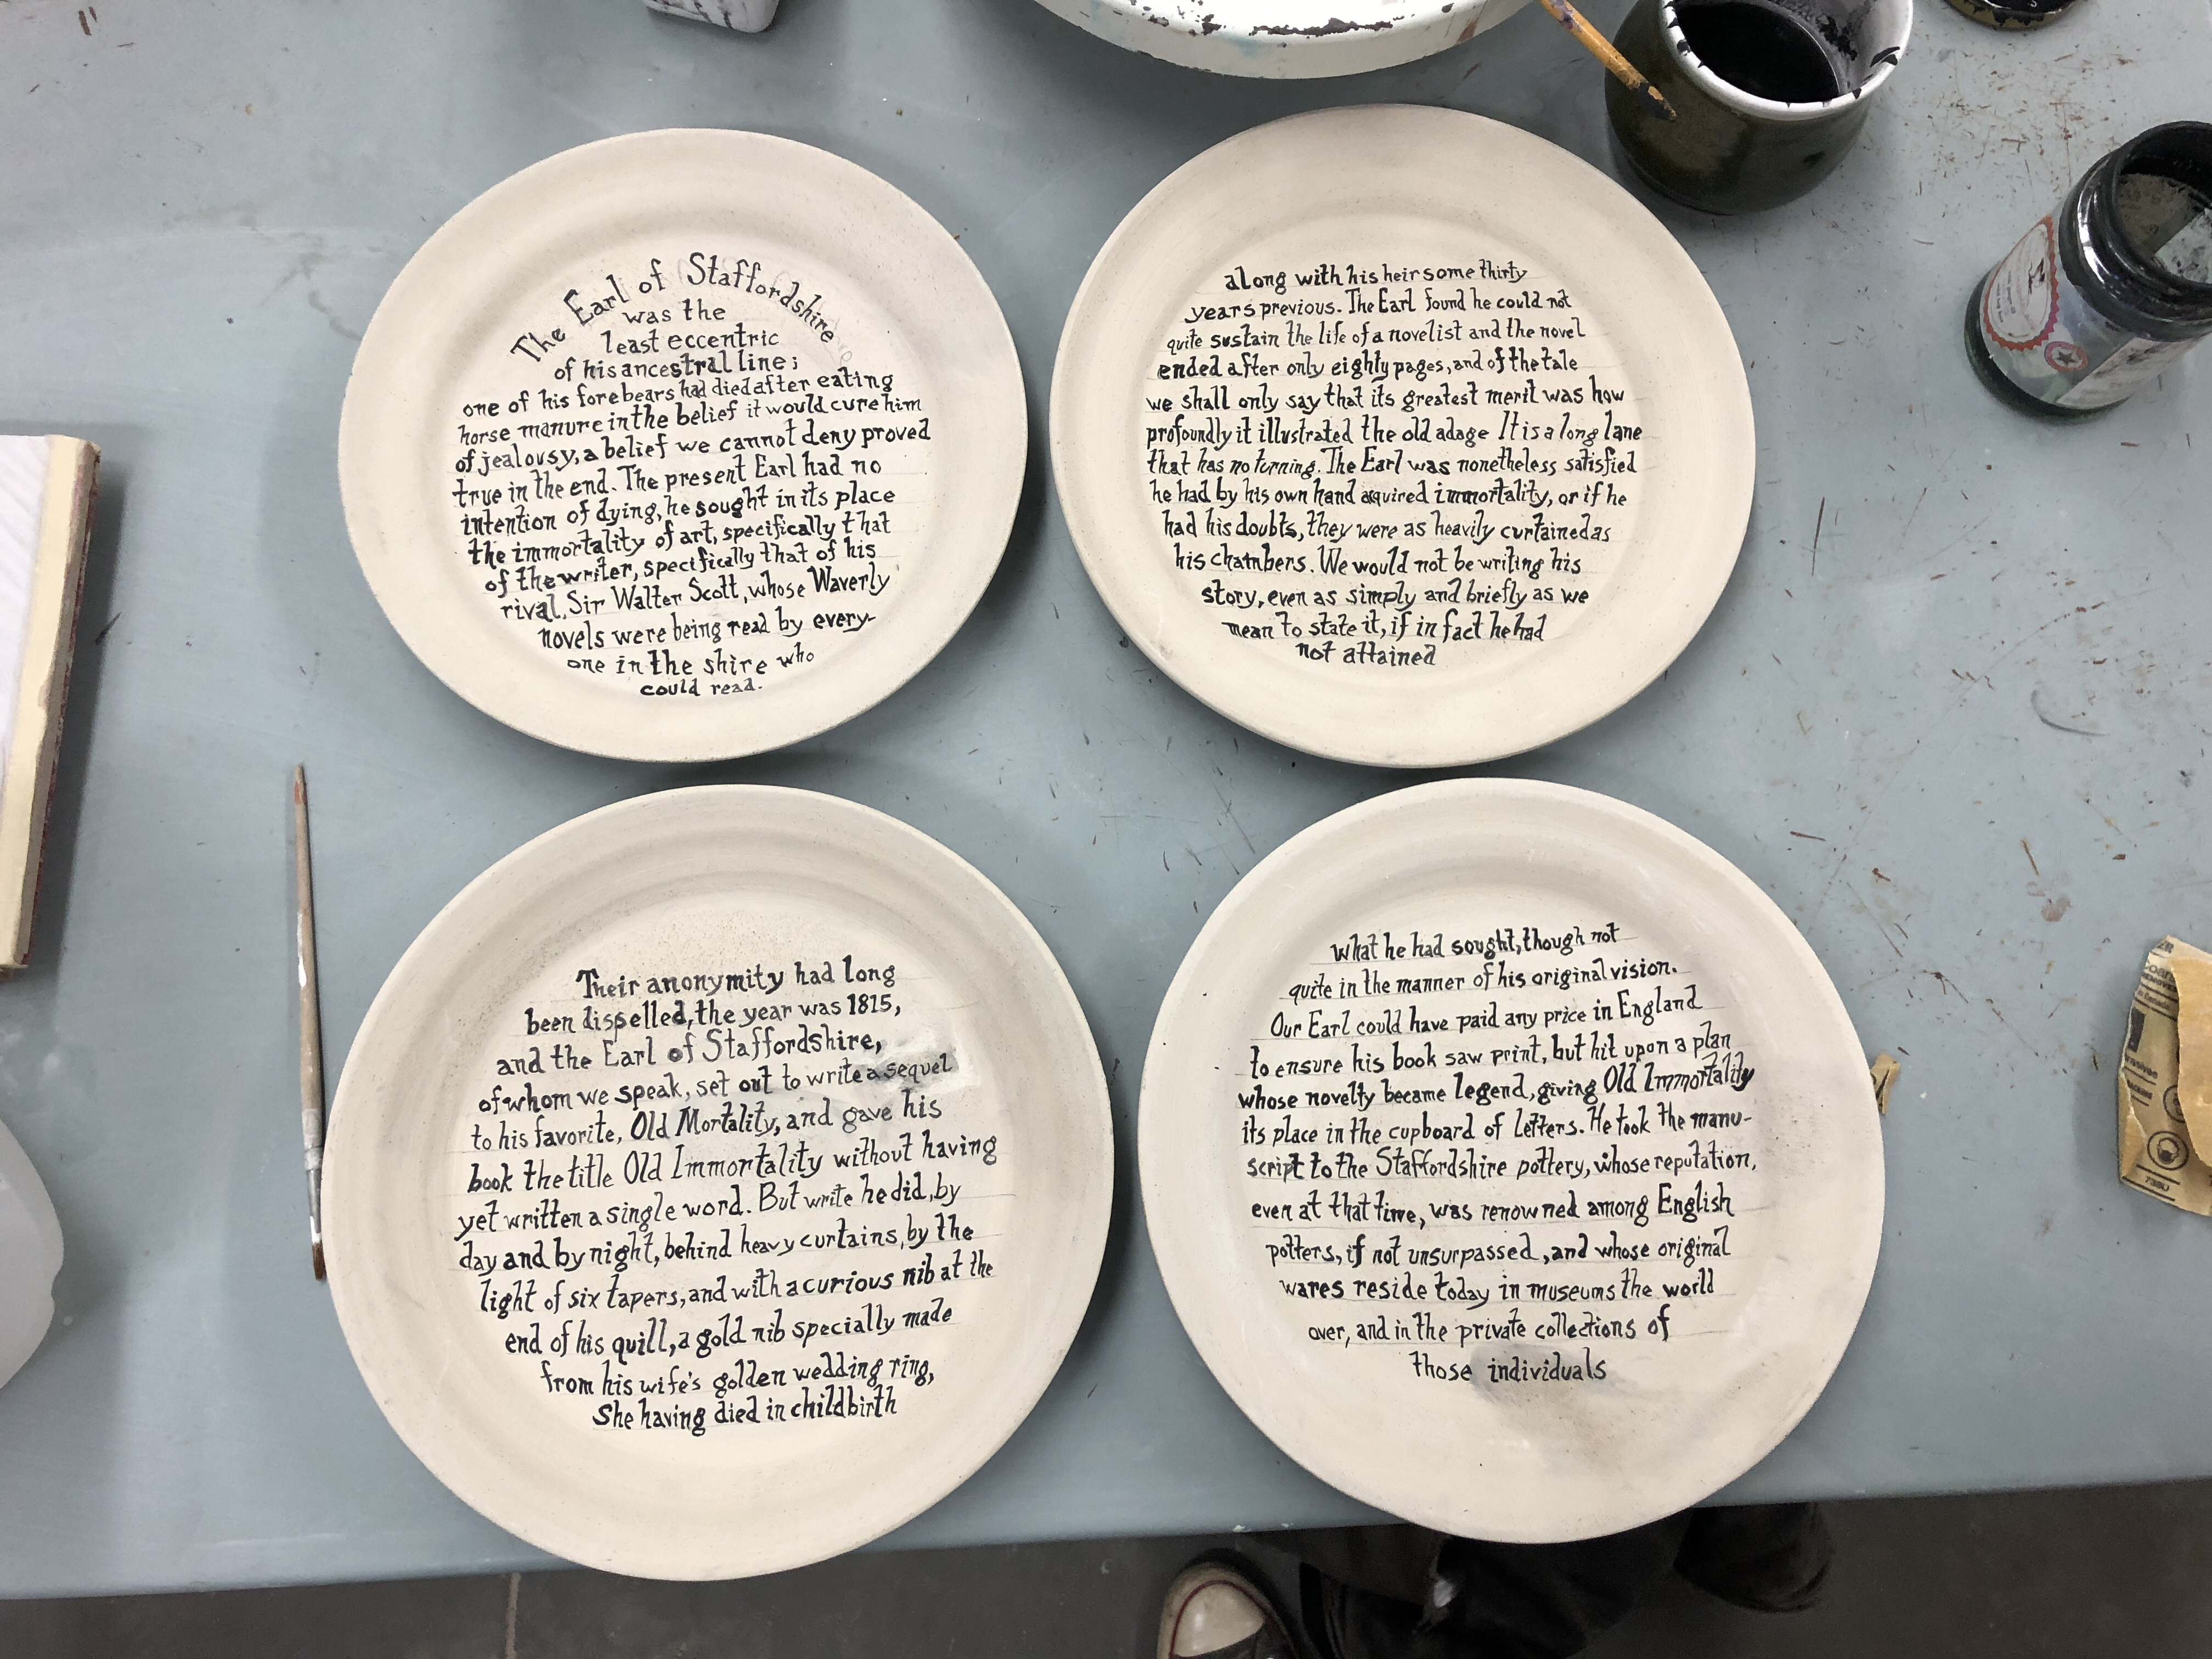 A dinner set for poet Mary Ruefle's April 2020 reading at UMass Amherst has as a centerpiece a plate set inspired by her short prose piece Old Immortality.